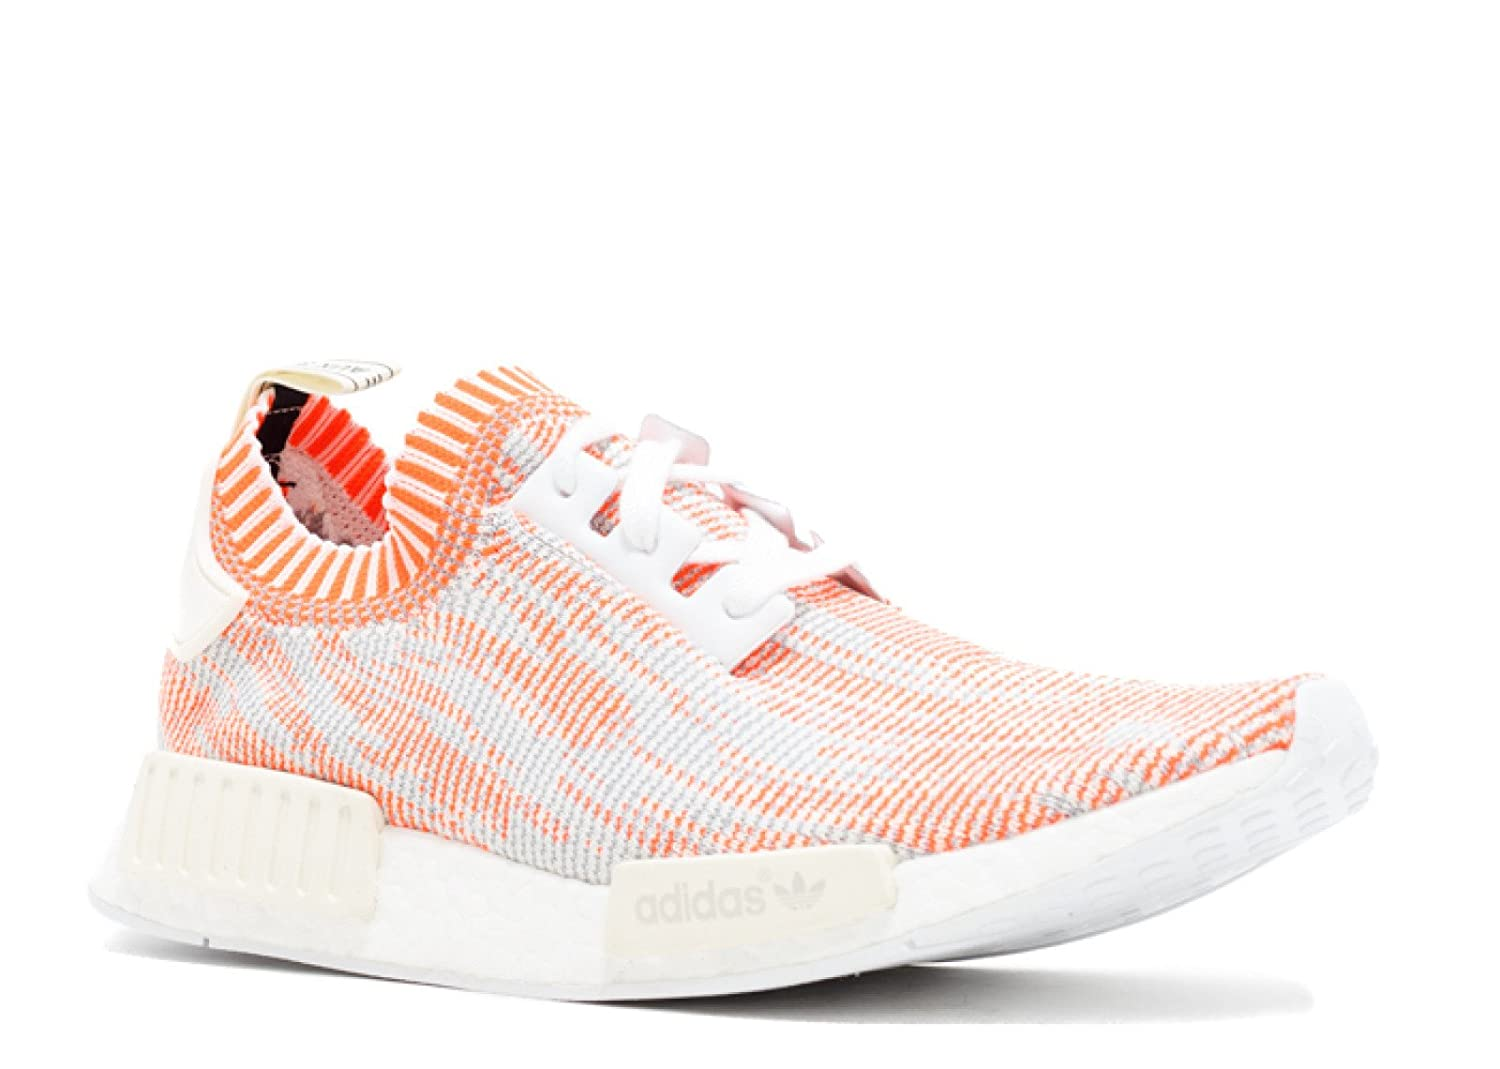 aa773a22d Amazon.com  adidas NMD R1 PK  CAMO Pack  - BA8599 - Size 6.5  Shoes